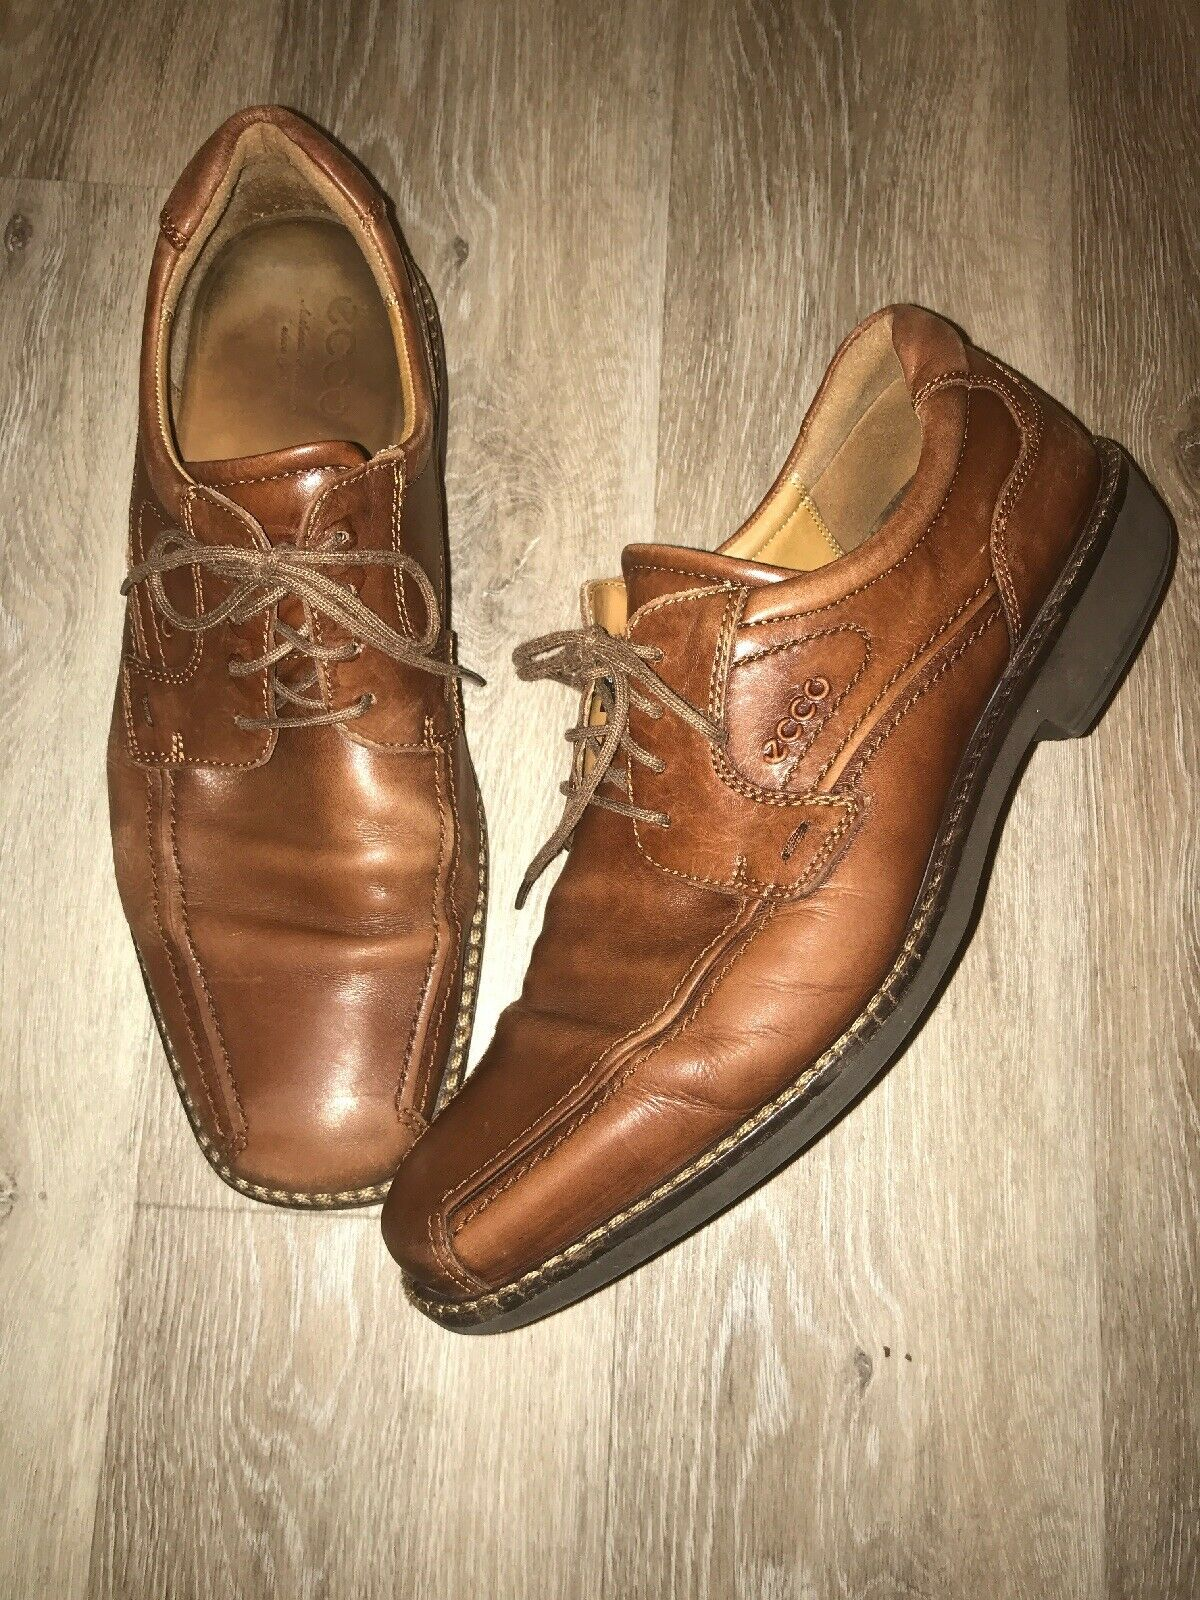 Ecco Oxford Brown Leather Mens Size 10.5US 44EUR